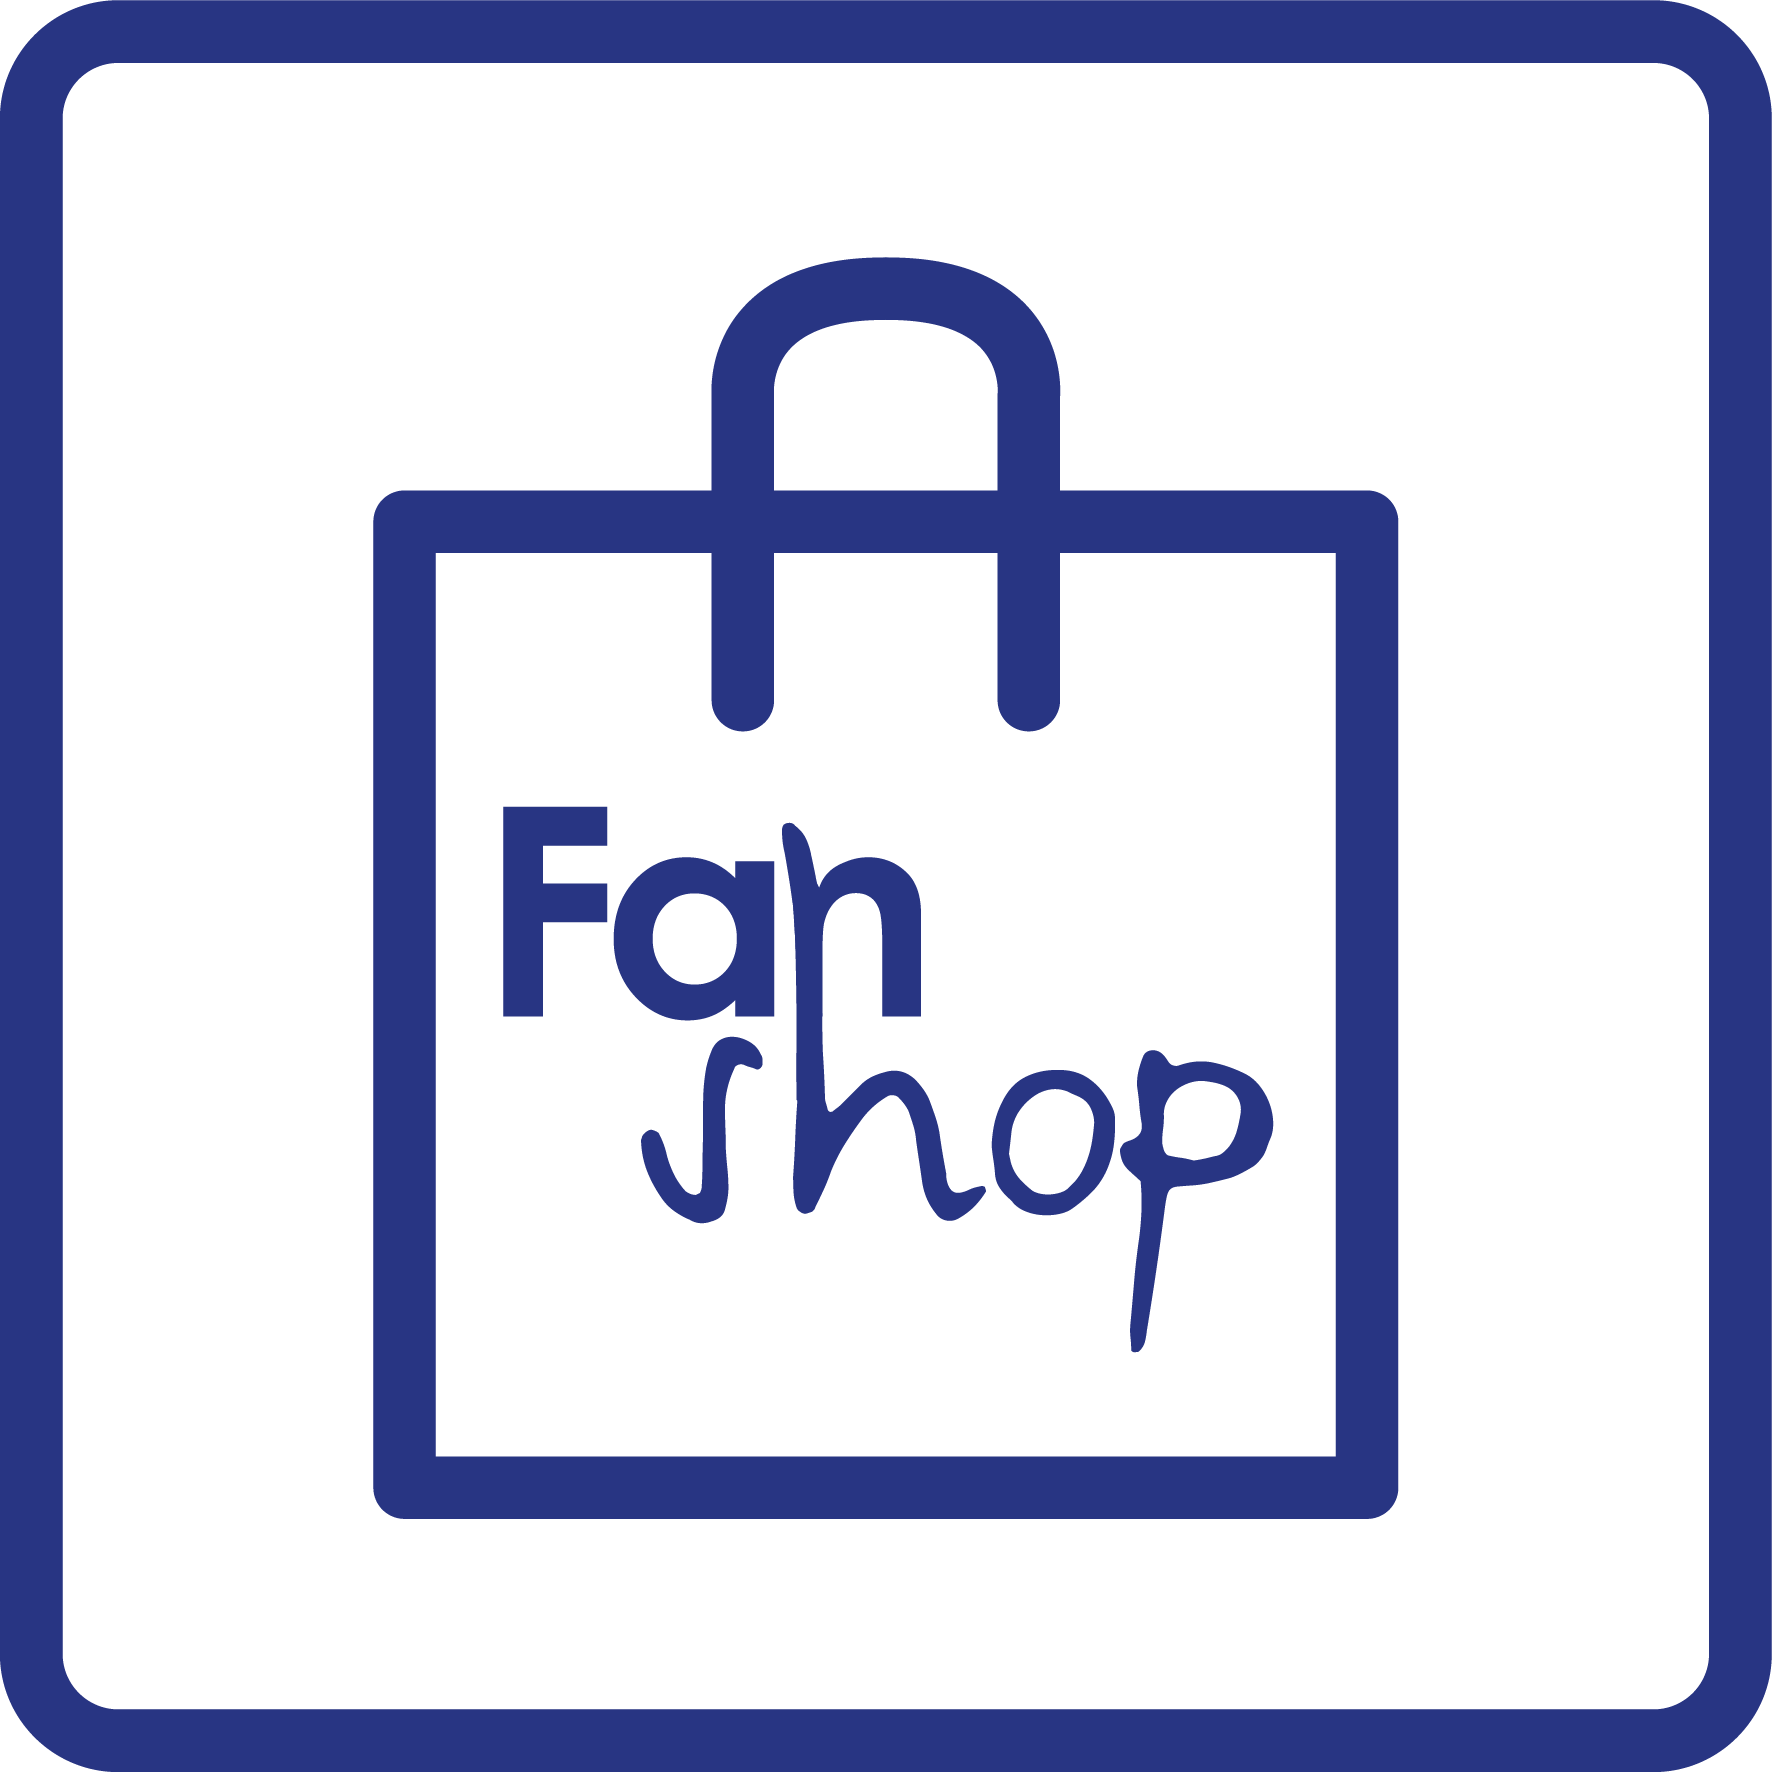 Icons_FanShop_outline_FanShop_outline.png